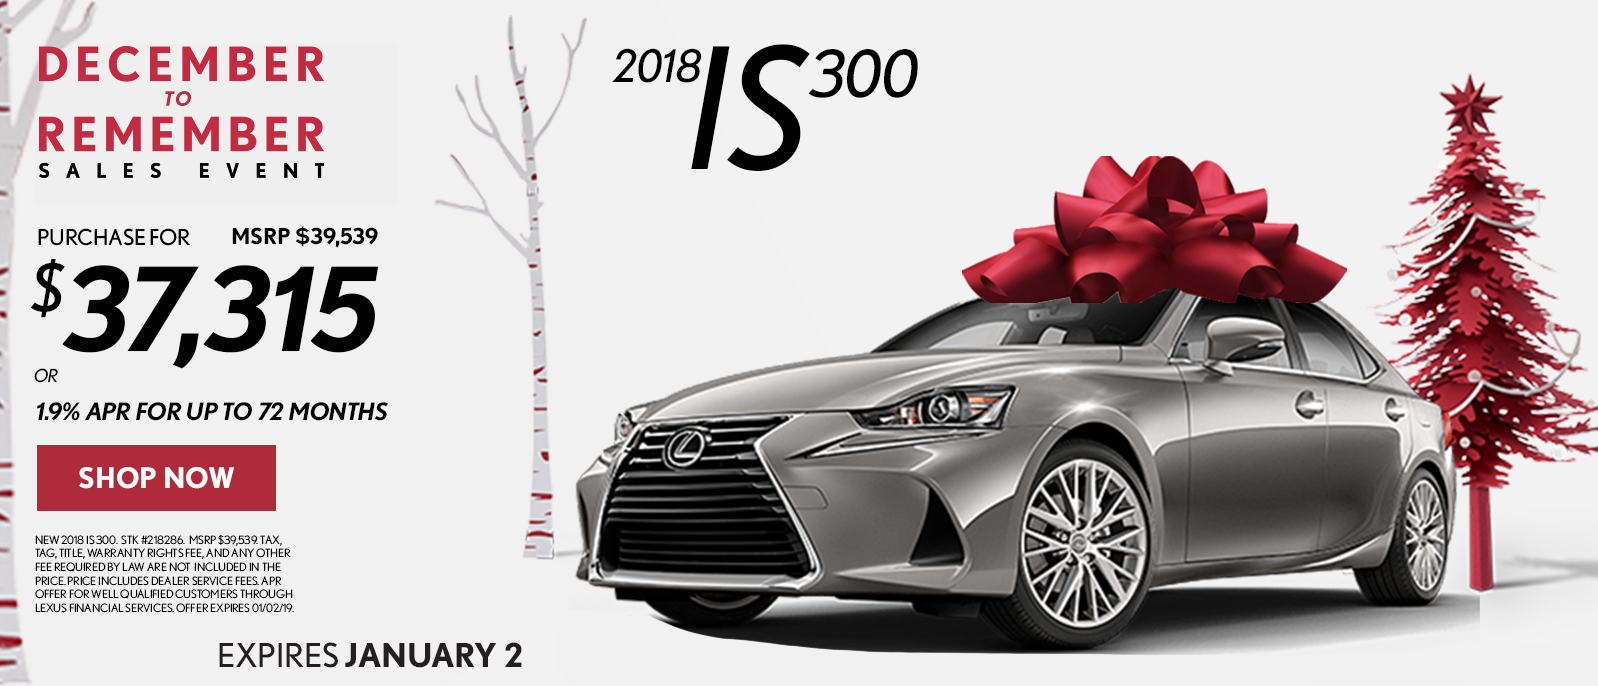 Hennessy Lexus Of Atlanta >> Hennessy Lexus | Lexus December to Remember Offers and Specials in Atlanta, GA